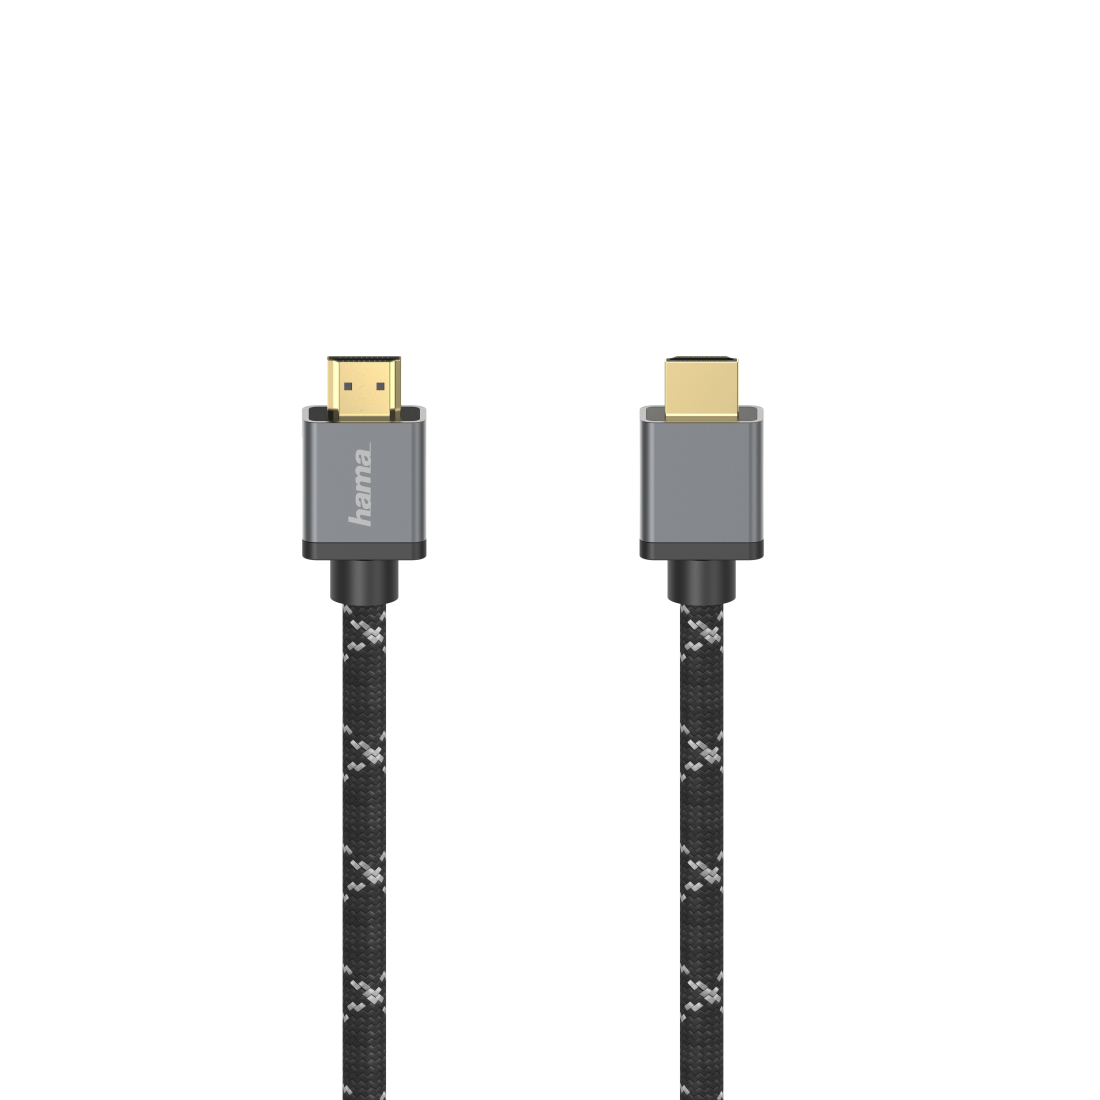 abx High-Res Image - Hama, Ultra High Speed HDMI™ Cable, Plug - Plug, 8K, Metal, 3.0 m